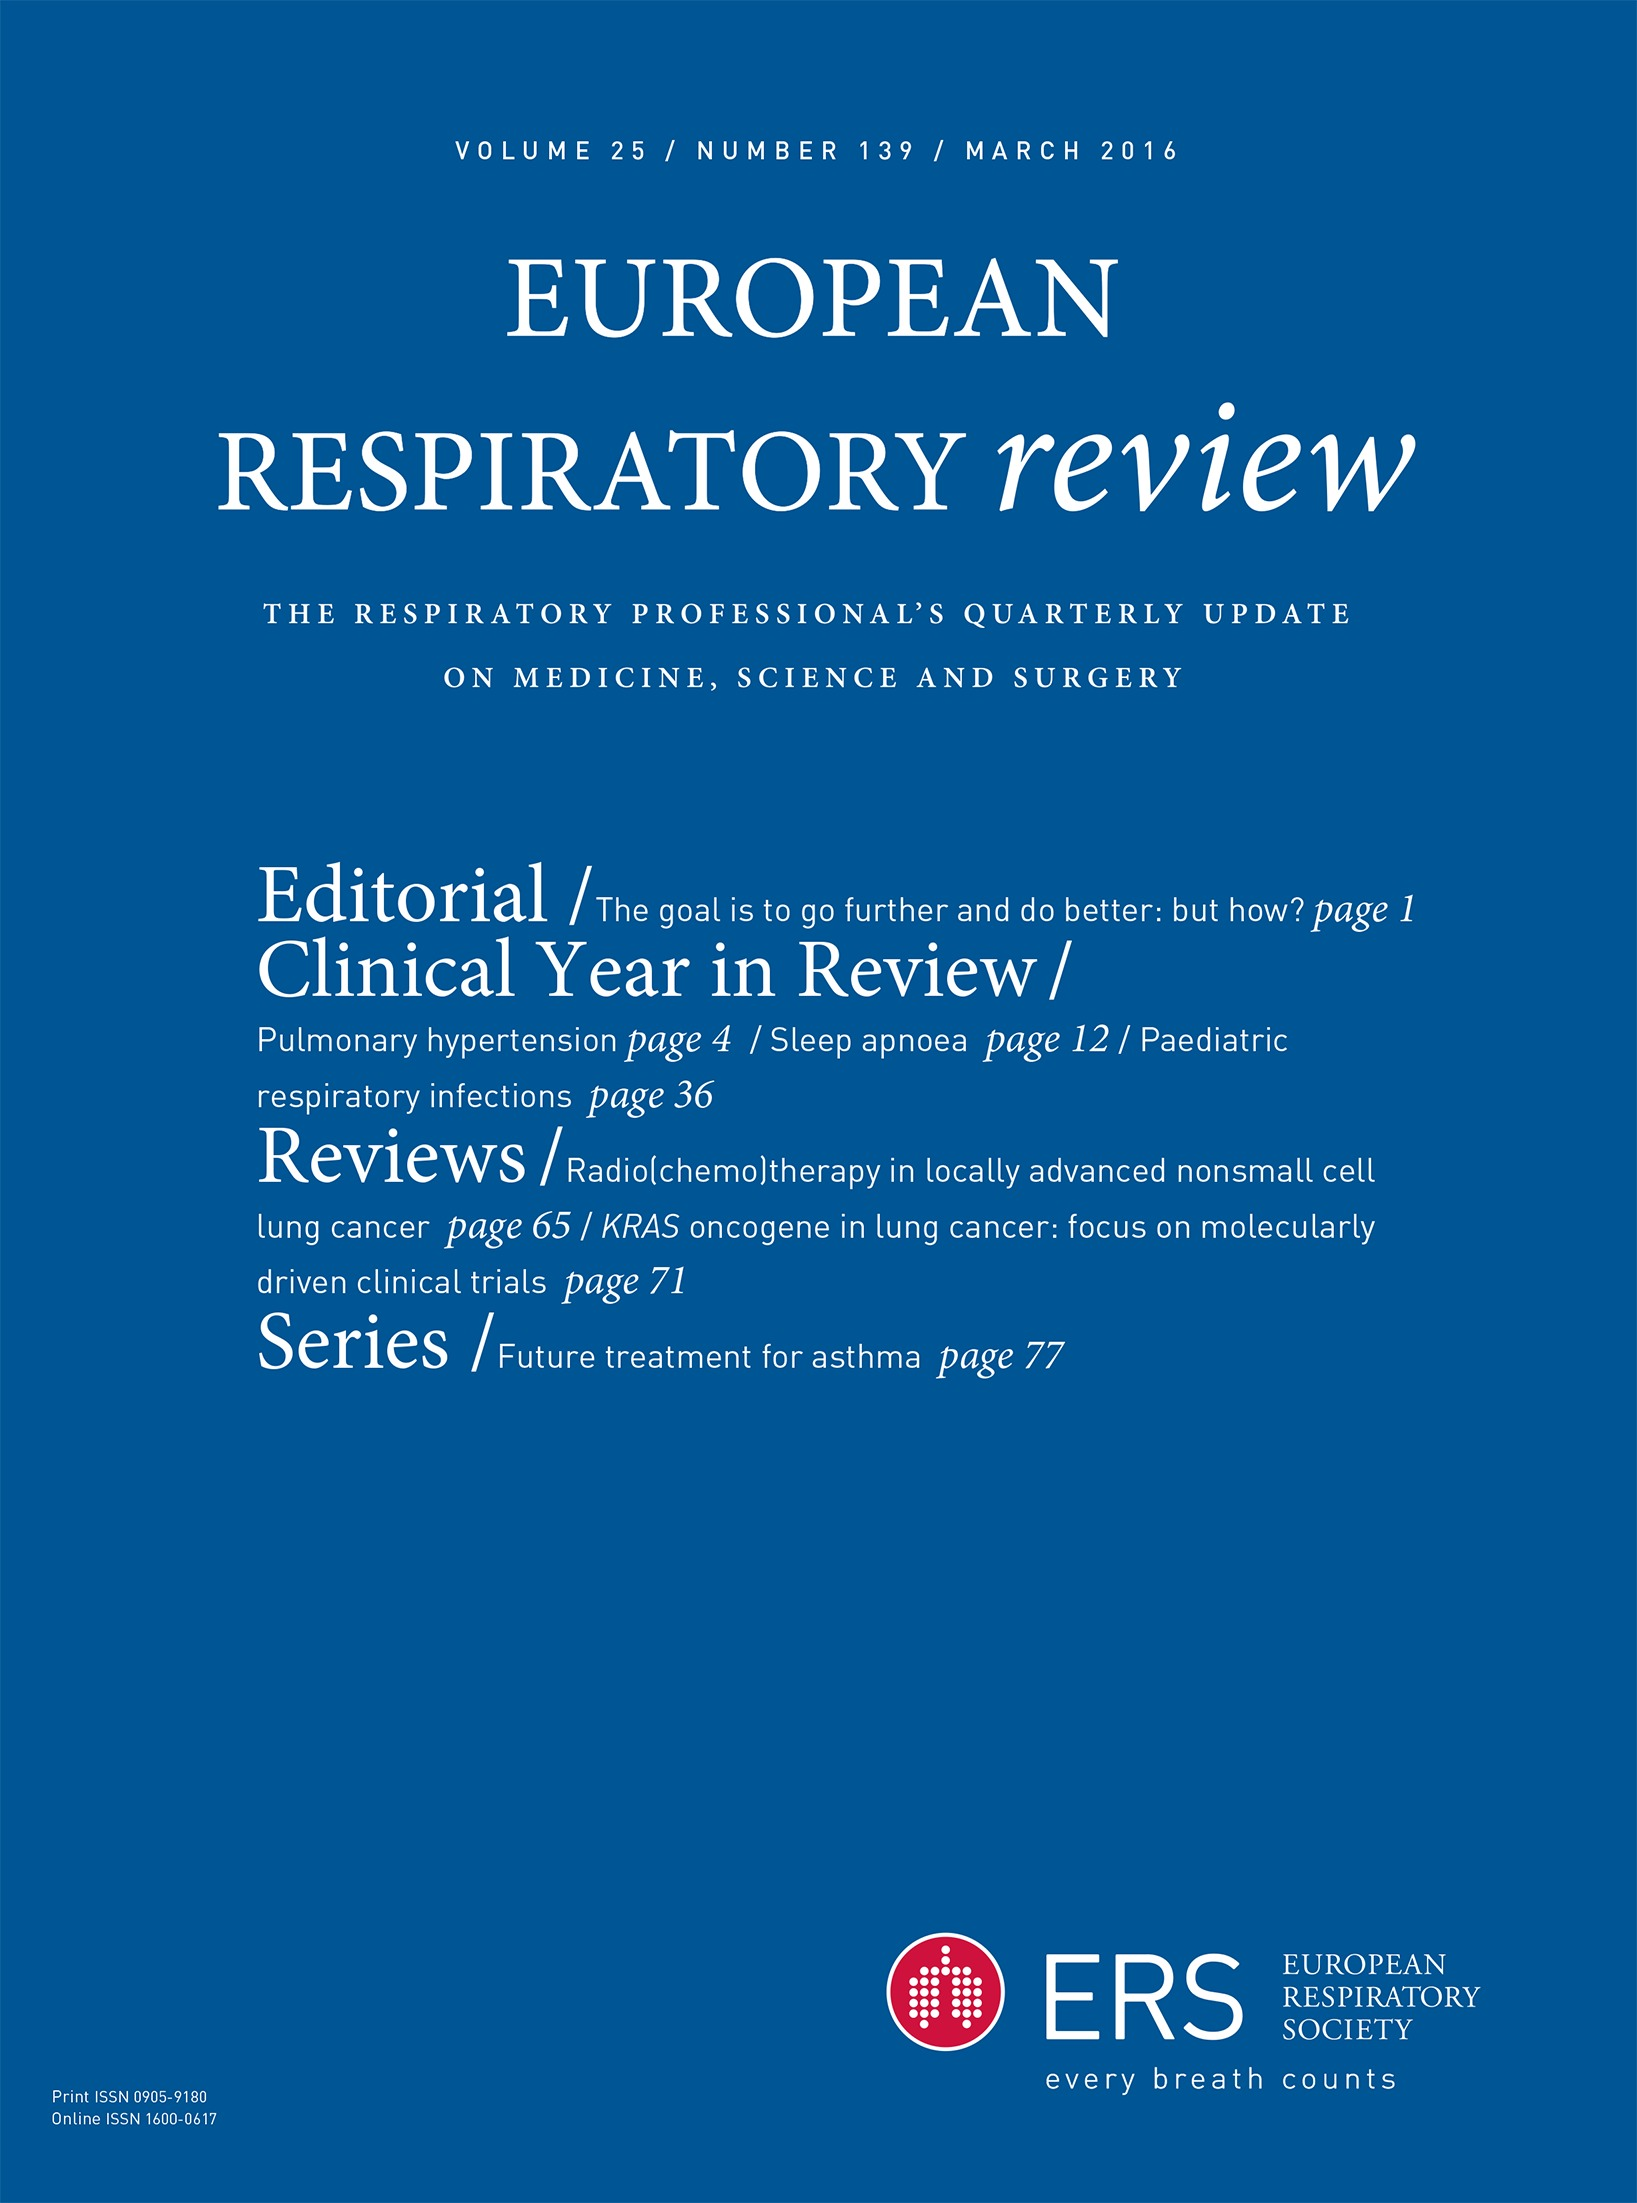 asthma case study answers Case studies on ed management of asthma carlos camargo, md • philadelphia study – ics are preferred treatment for persistent asthma • case 3.